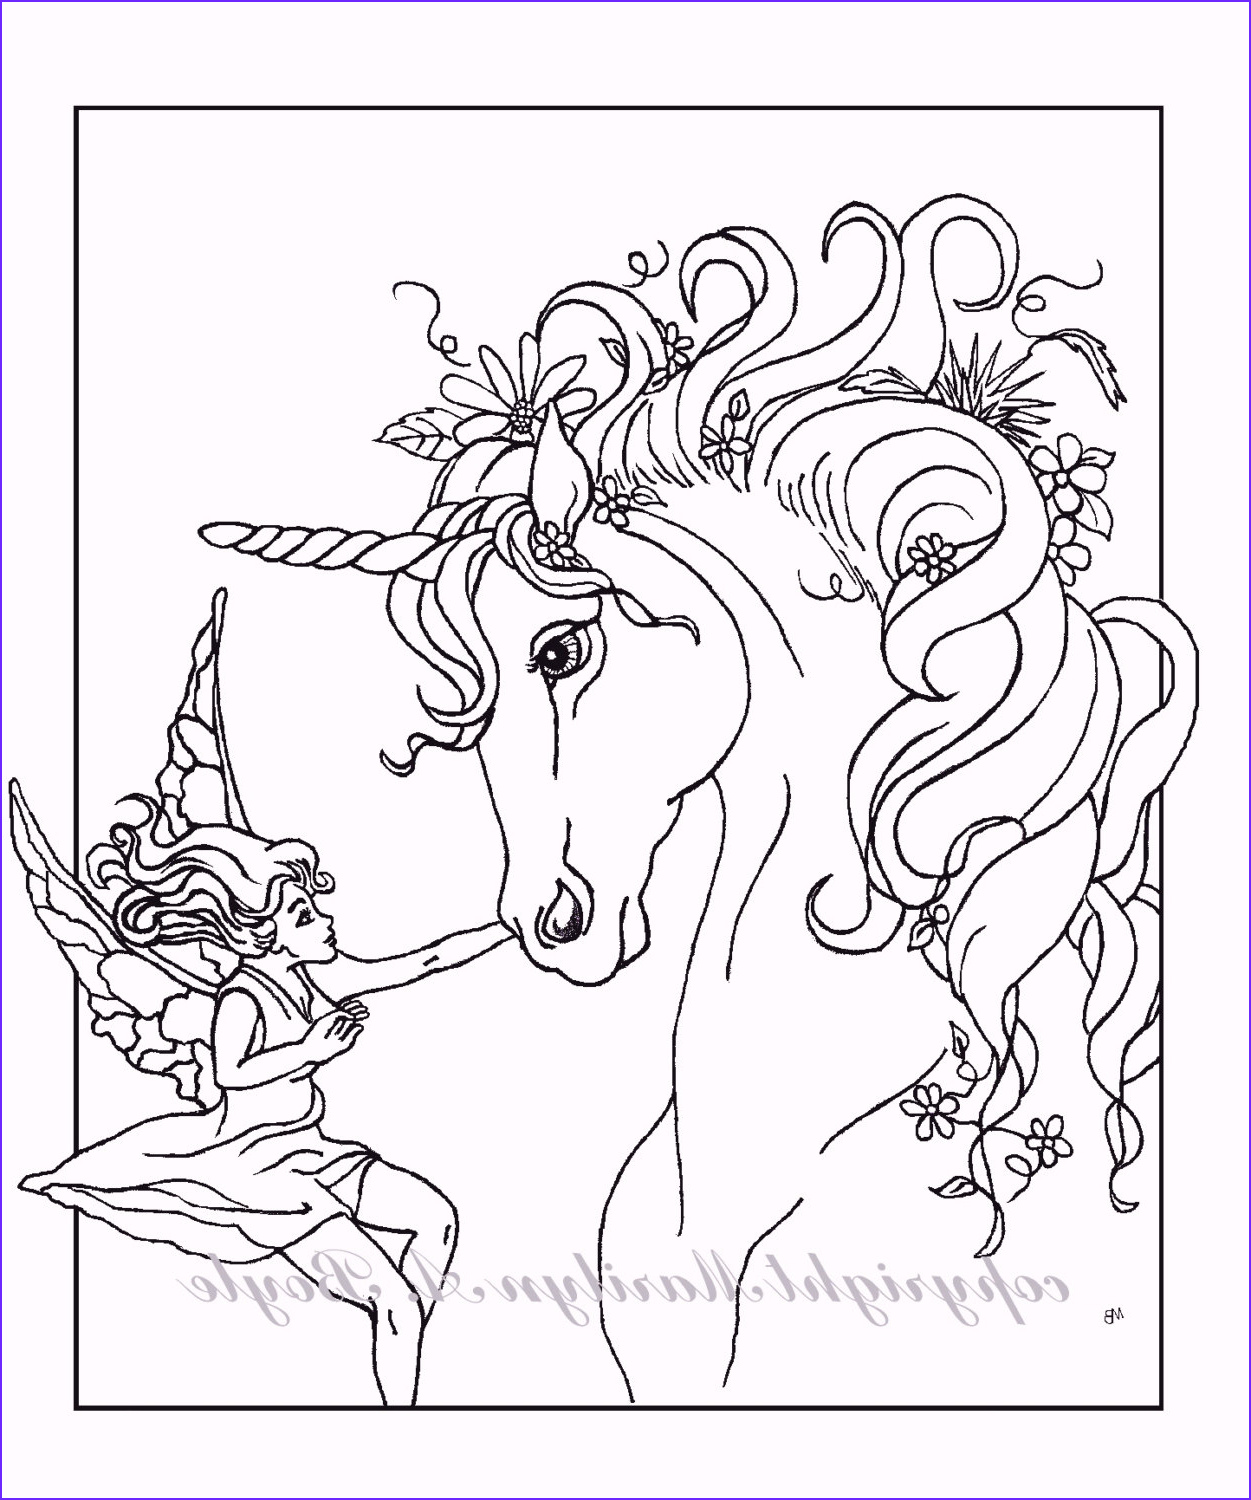 Fantasy Coloring Books Luxury Collection Adult Coloring Page Fantasy Unicorn Fairy Digital